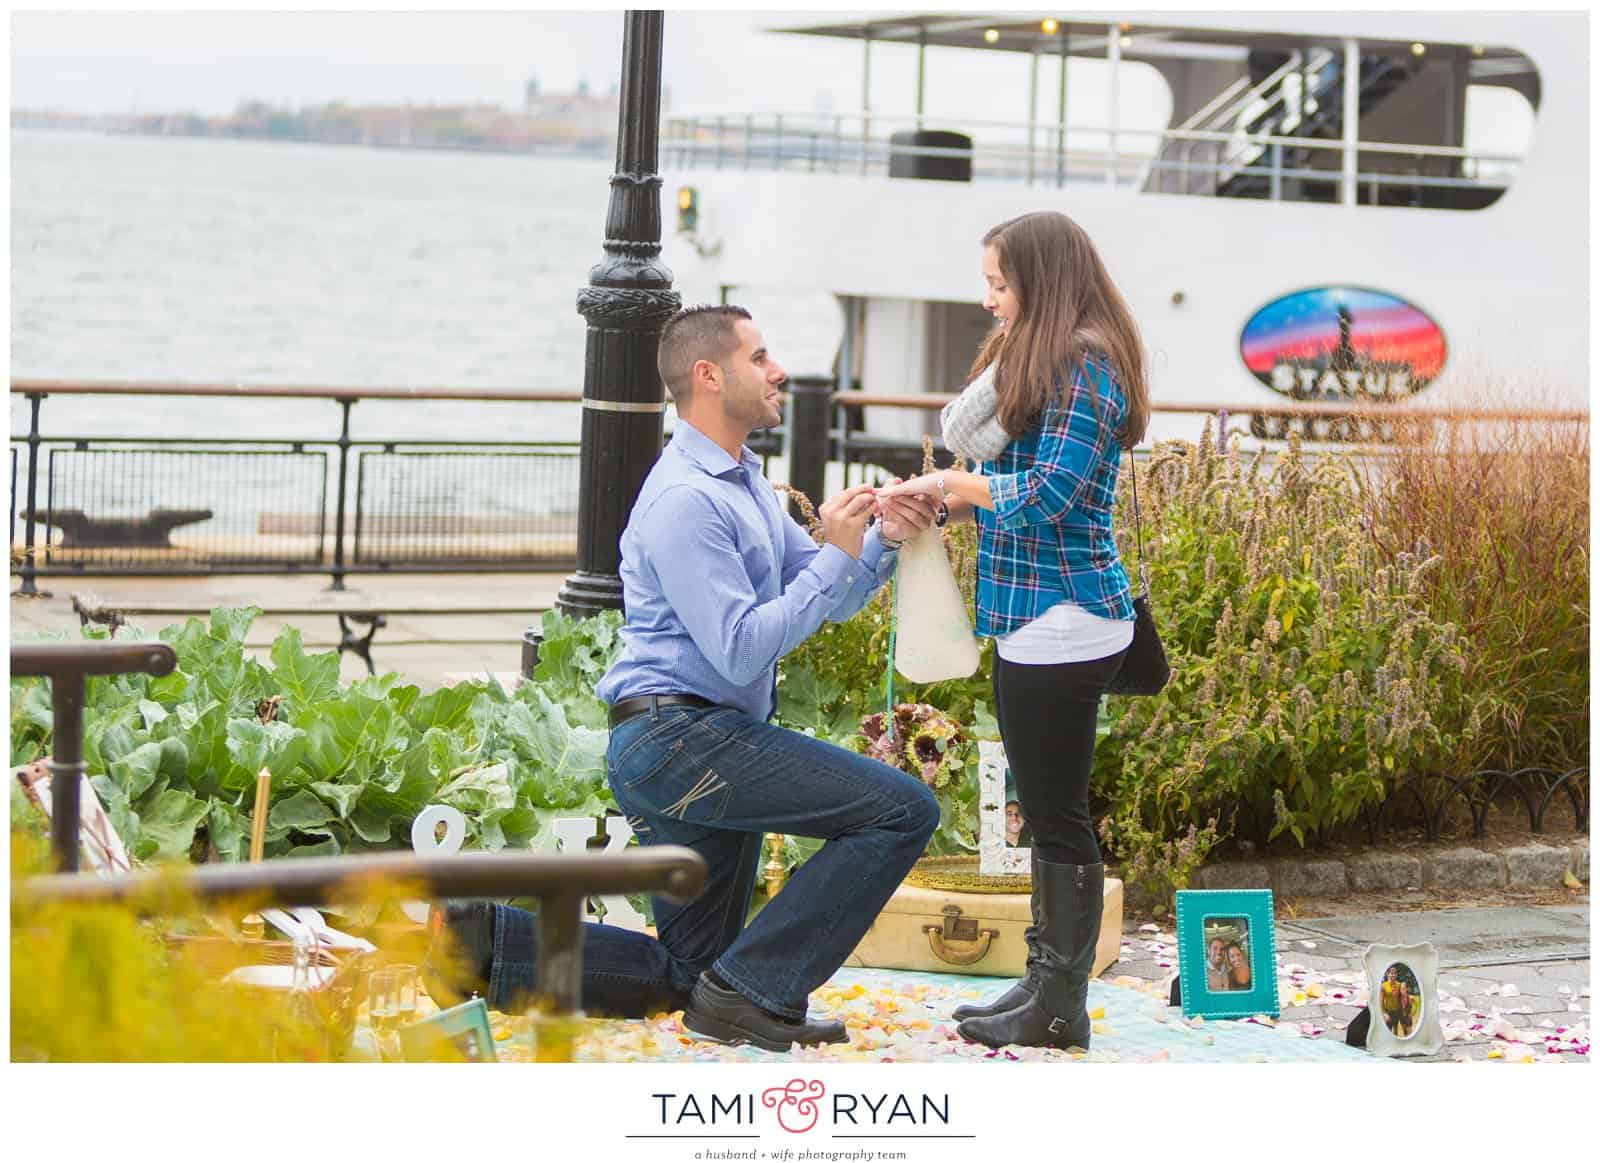 Rocco-Kait-New-York-City-Battery-Park-Proposal-Surprise-0031